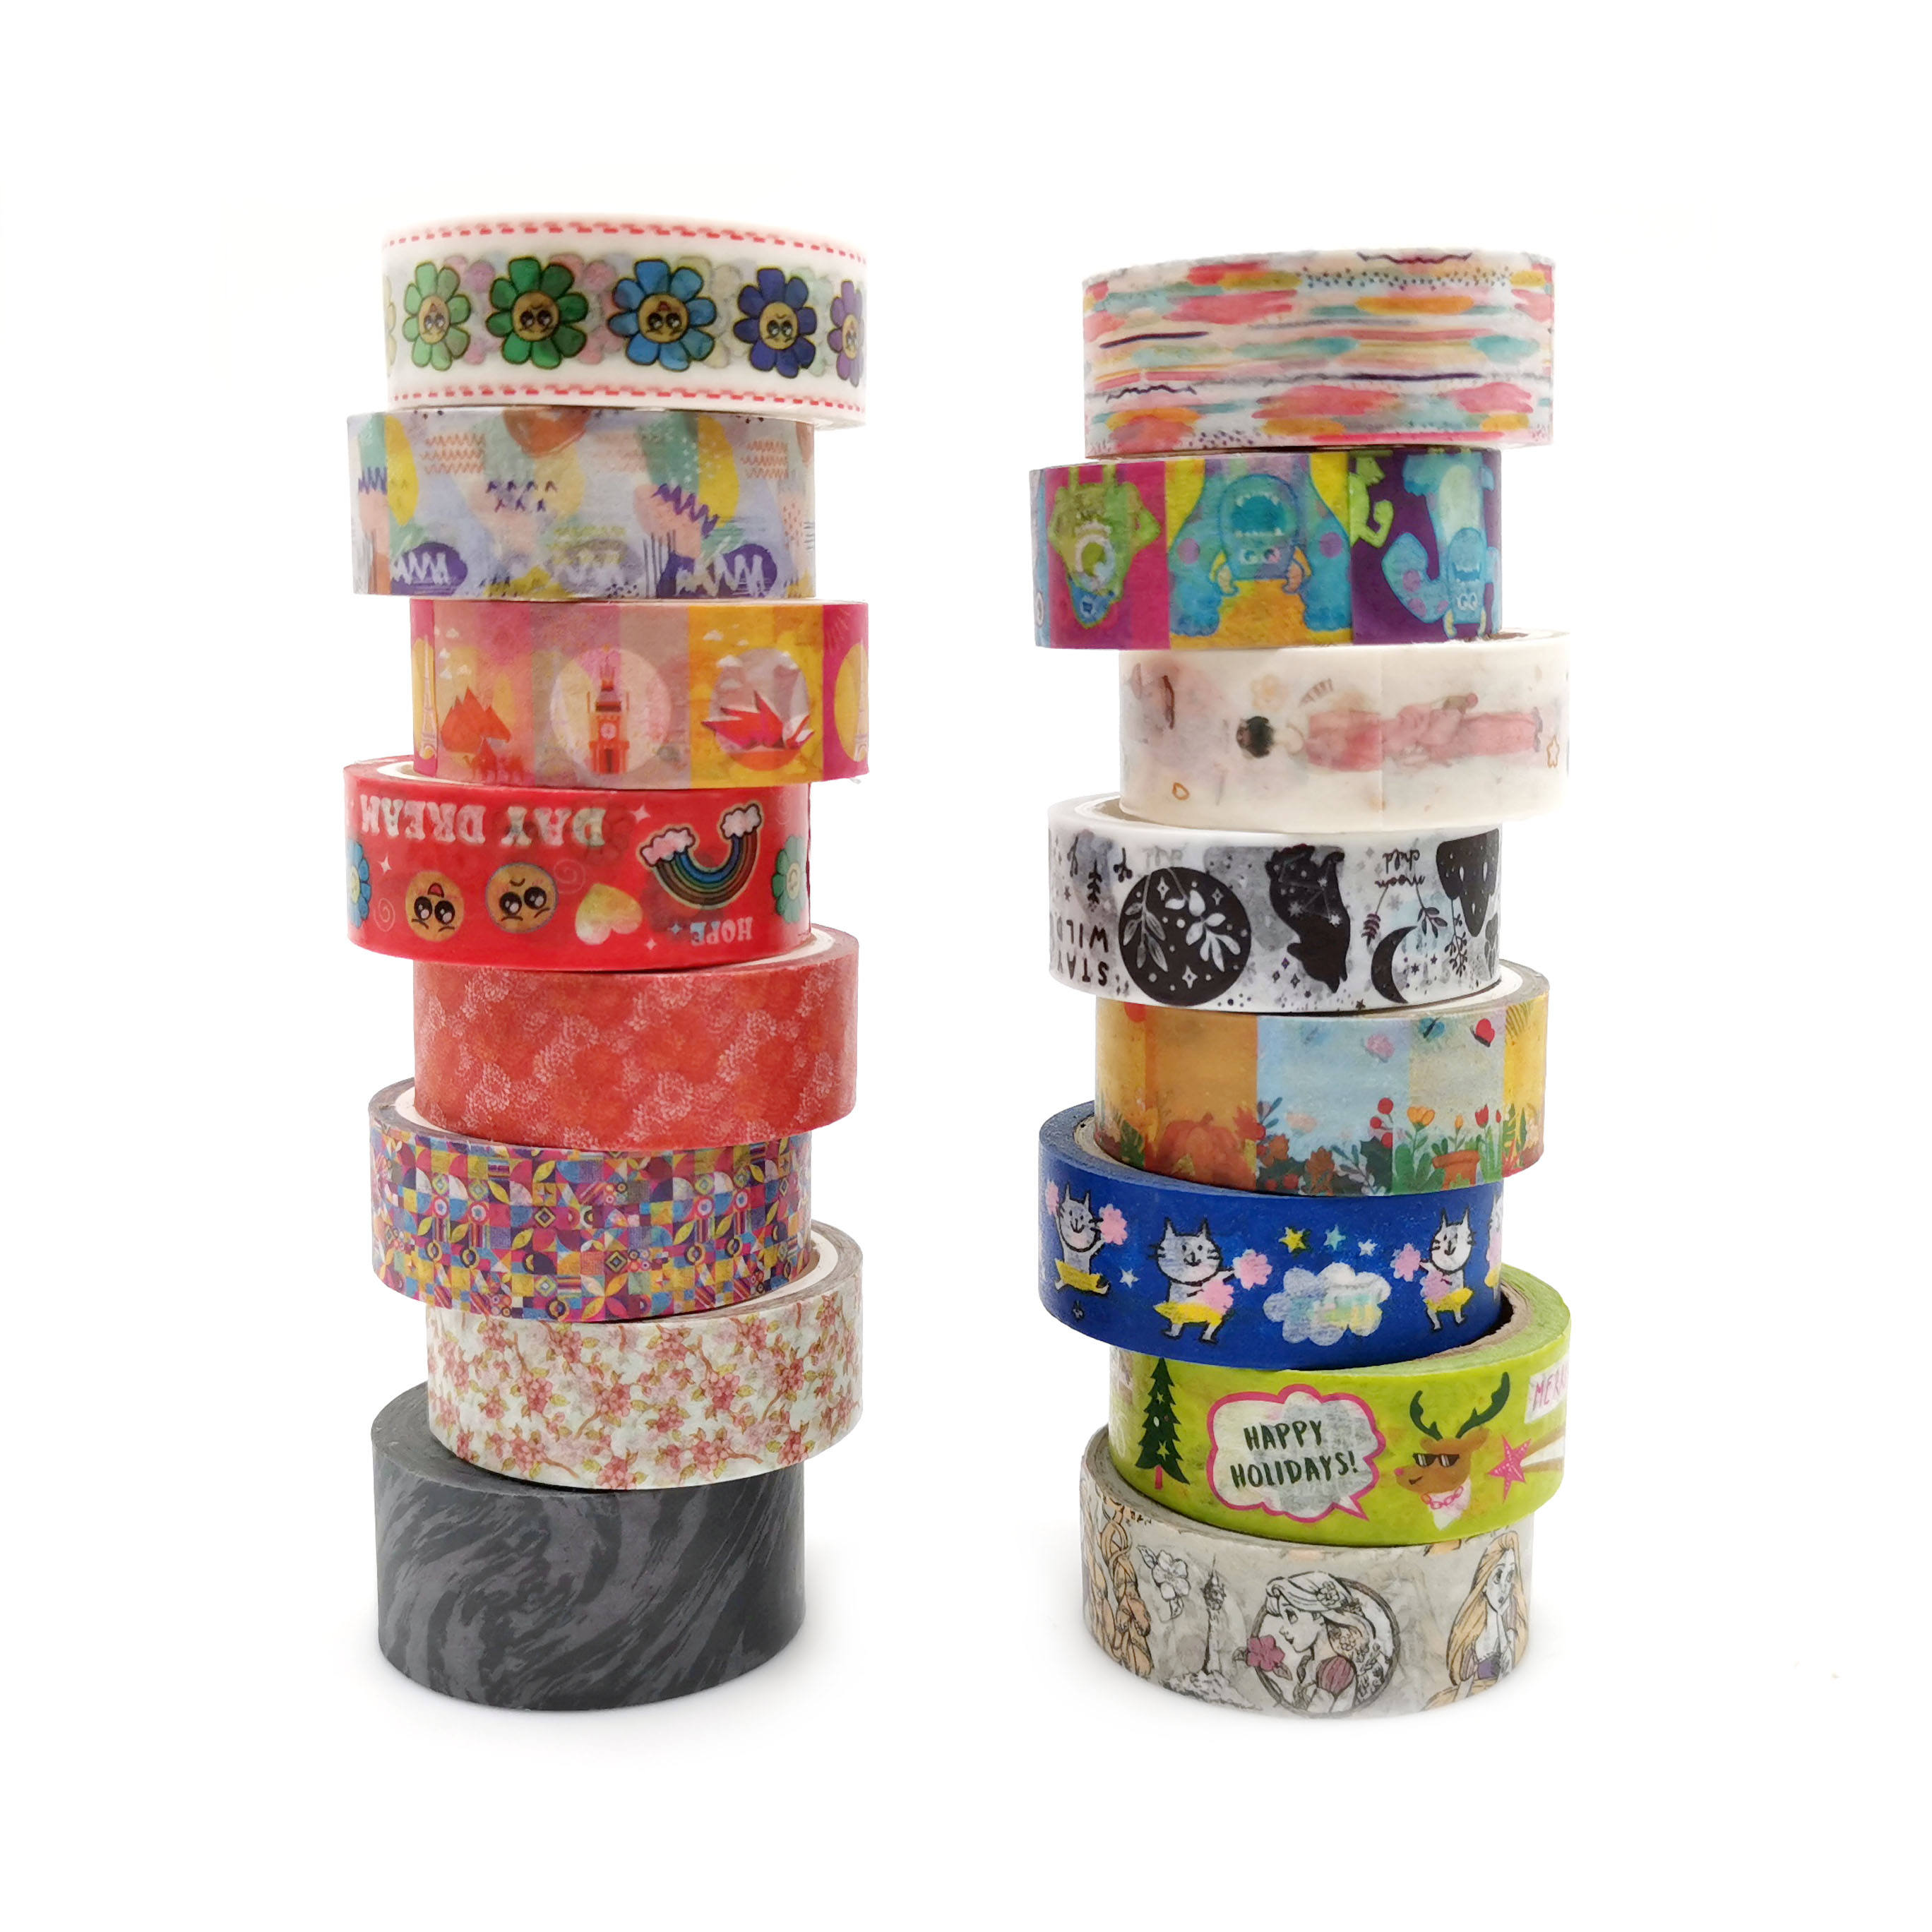 Custom Adhesive Decor Paper Masking Gold Foil Washi Tape Personalizado Printing